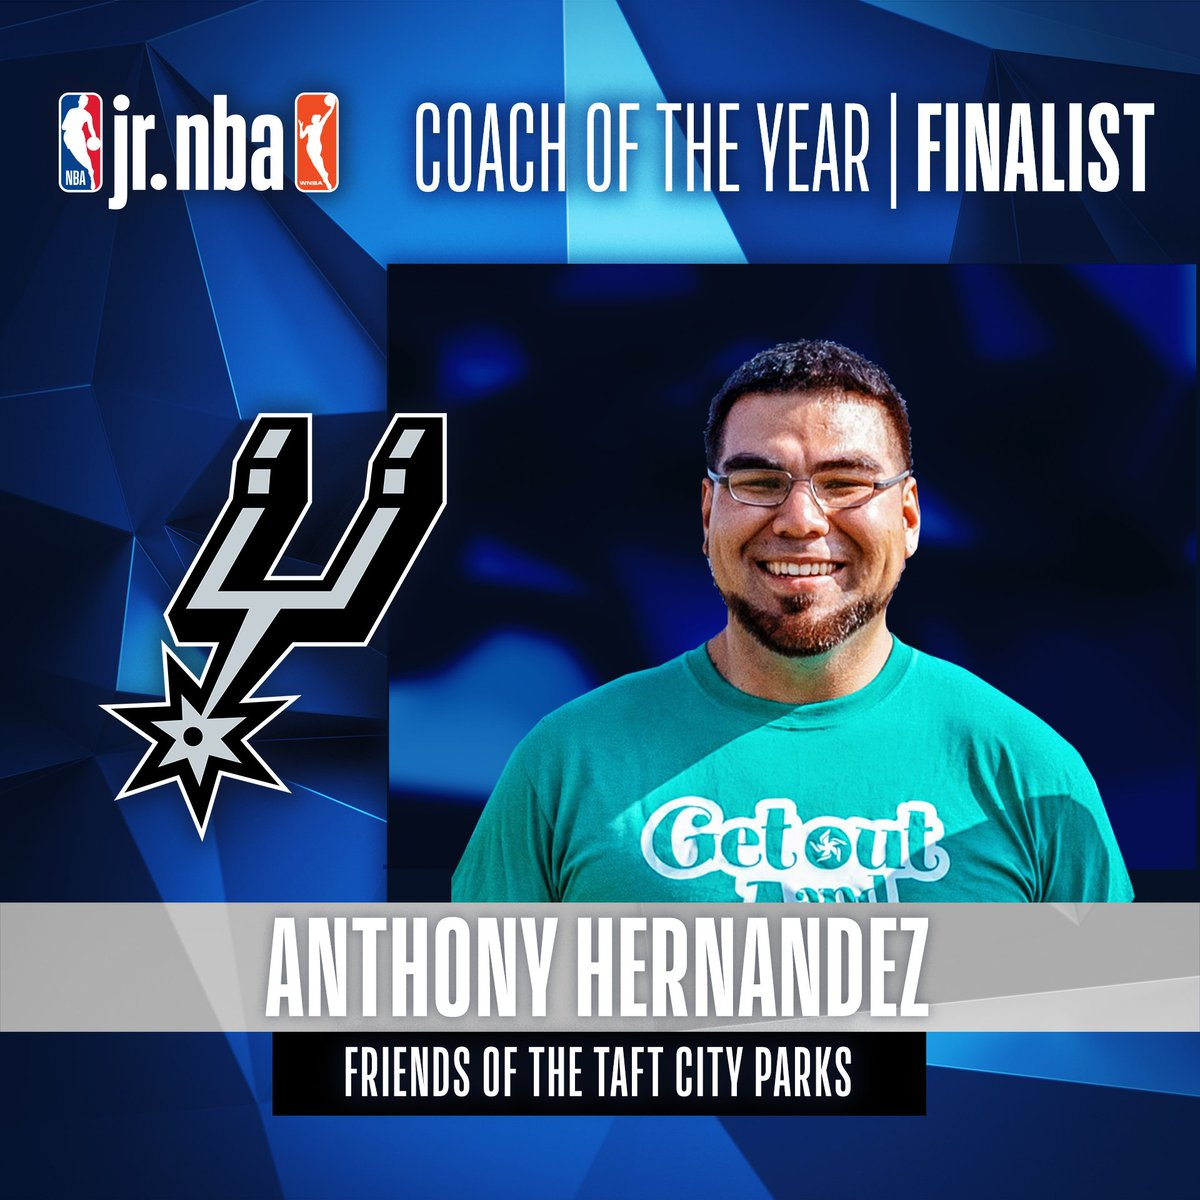 A finalist for 2019 #JrNBACOY is Anthony Hernandez. Coach Anthony is the @Spurs' Vice Chairman for the Parks and Recreation organization, and helps run its Jr. NBA league! Jr. NBA Coach of the Year will be announced at the Jr. NBA Youth Basketball Leadership Conference! 👏👏 https://t.co/TKtmuIeAA5